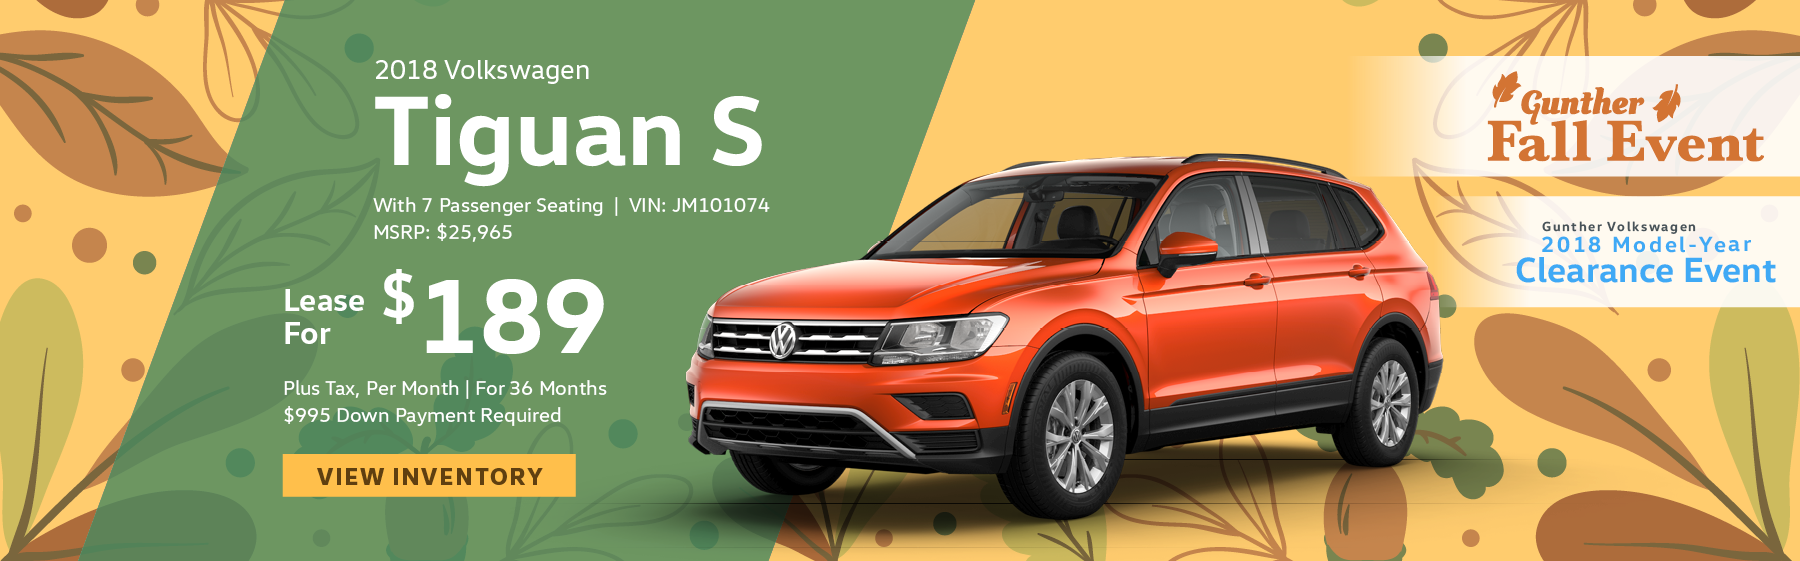 Lease the 2018 Volkswagen Tiguan S for $189 plus tax for 36 months. $995 Down payment required.